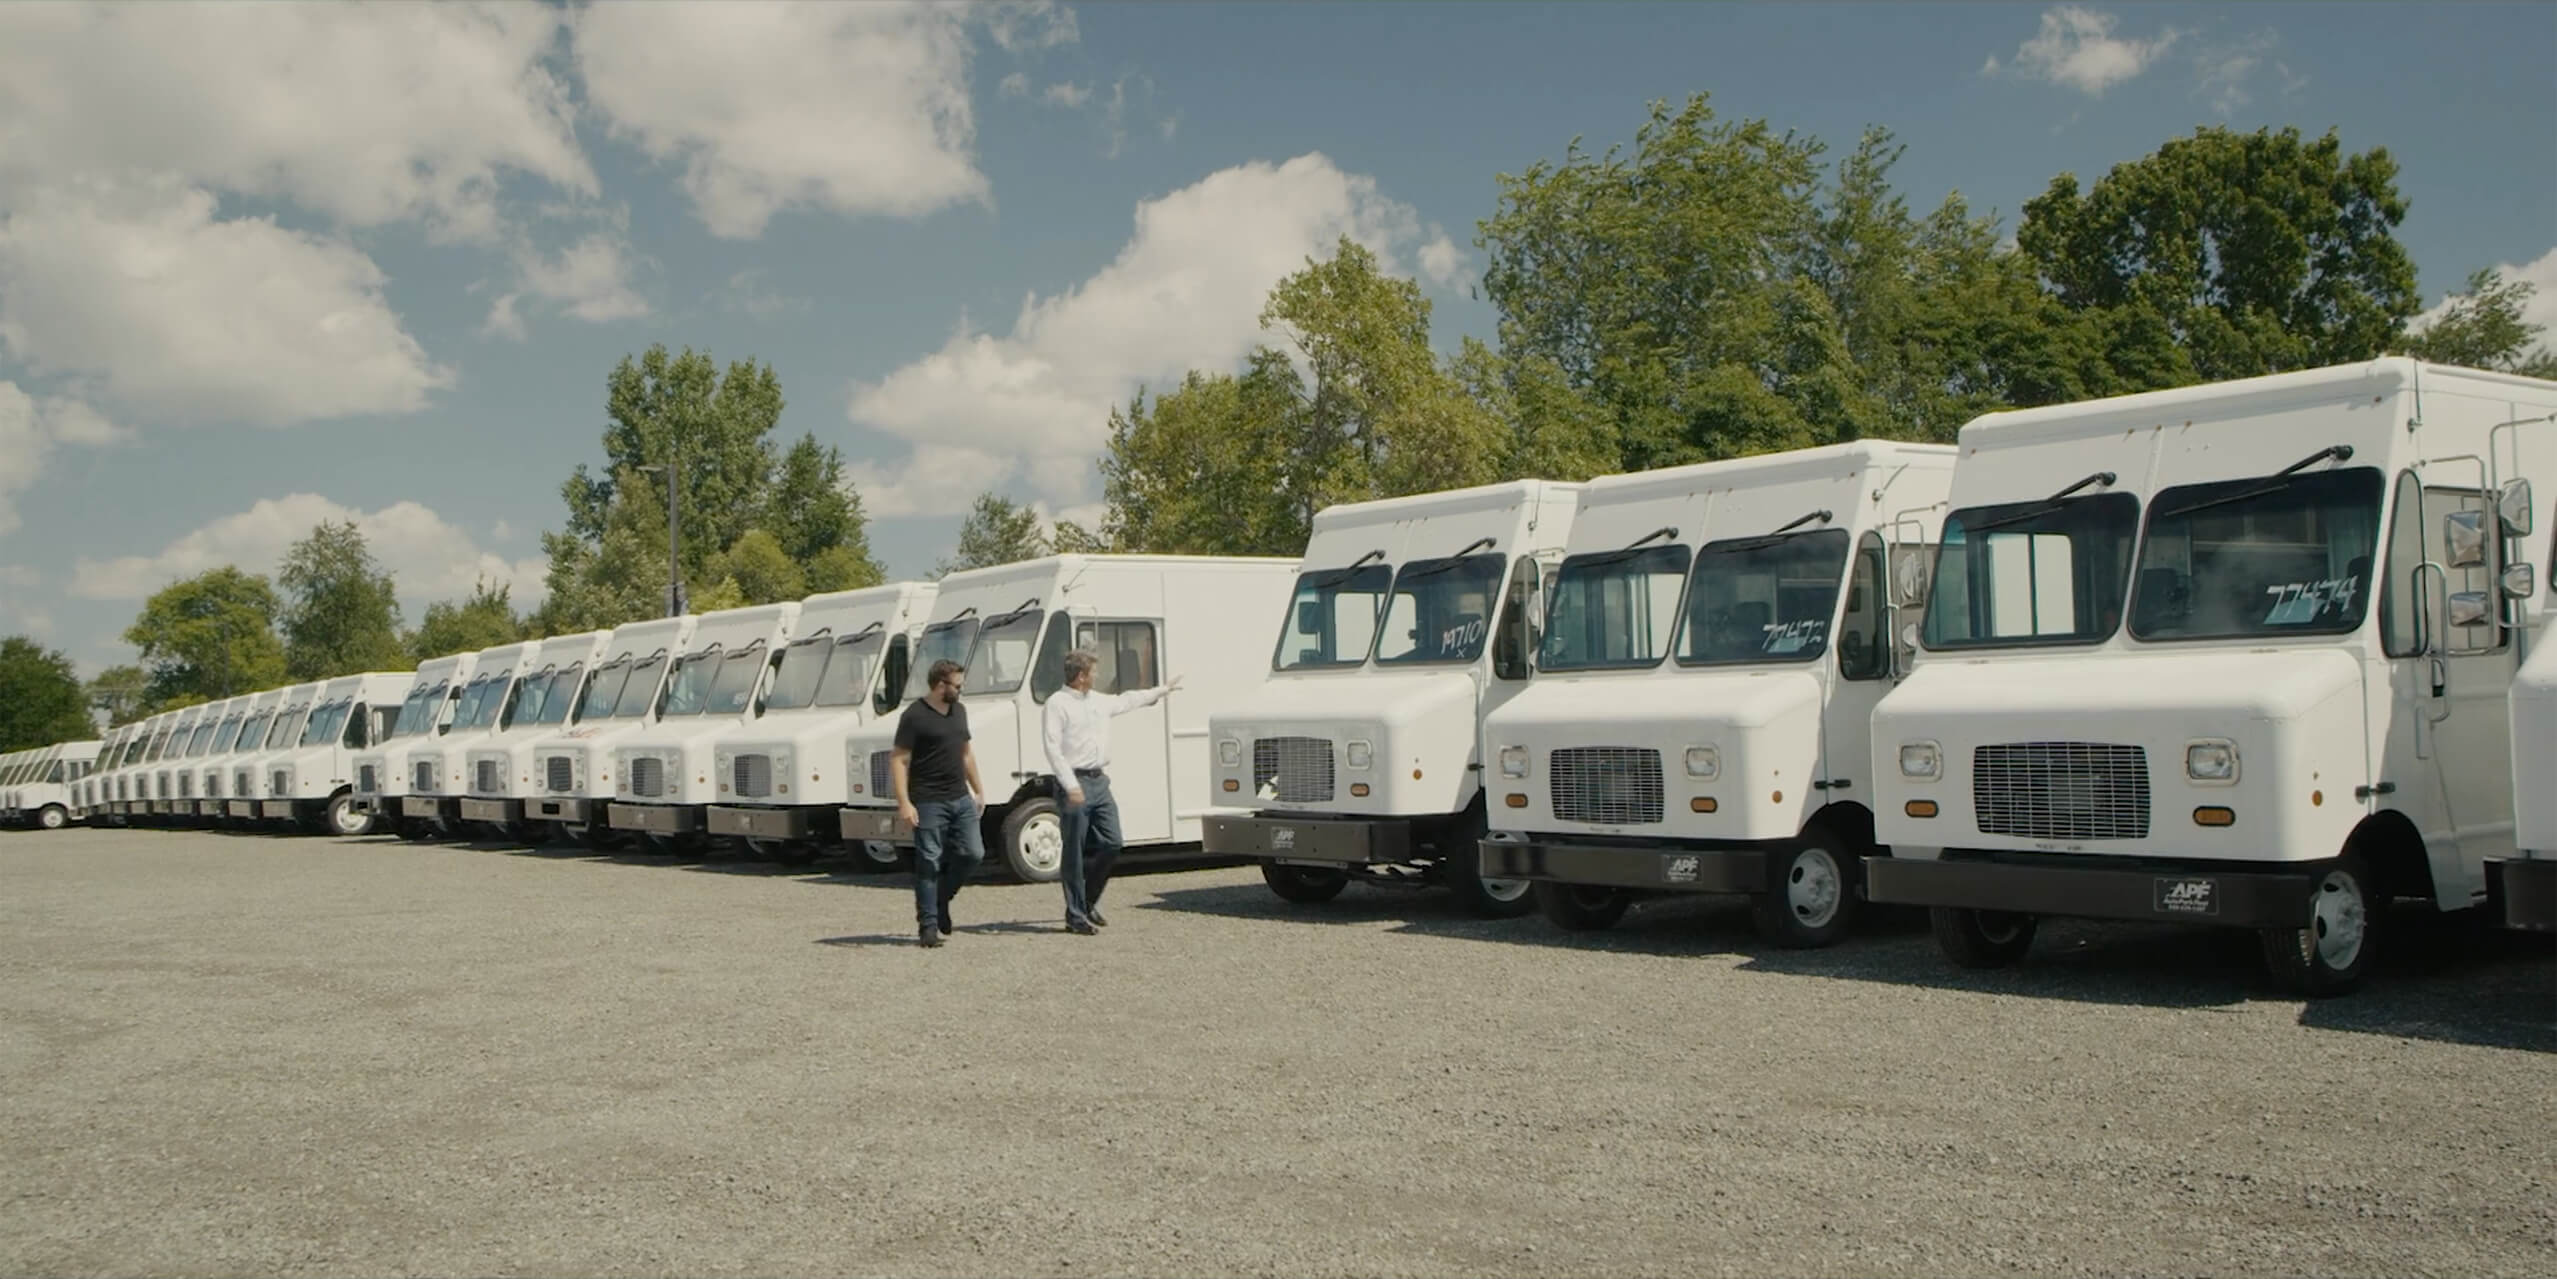 Rows of delivery trucks